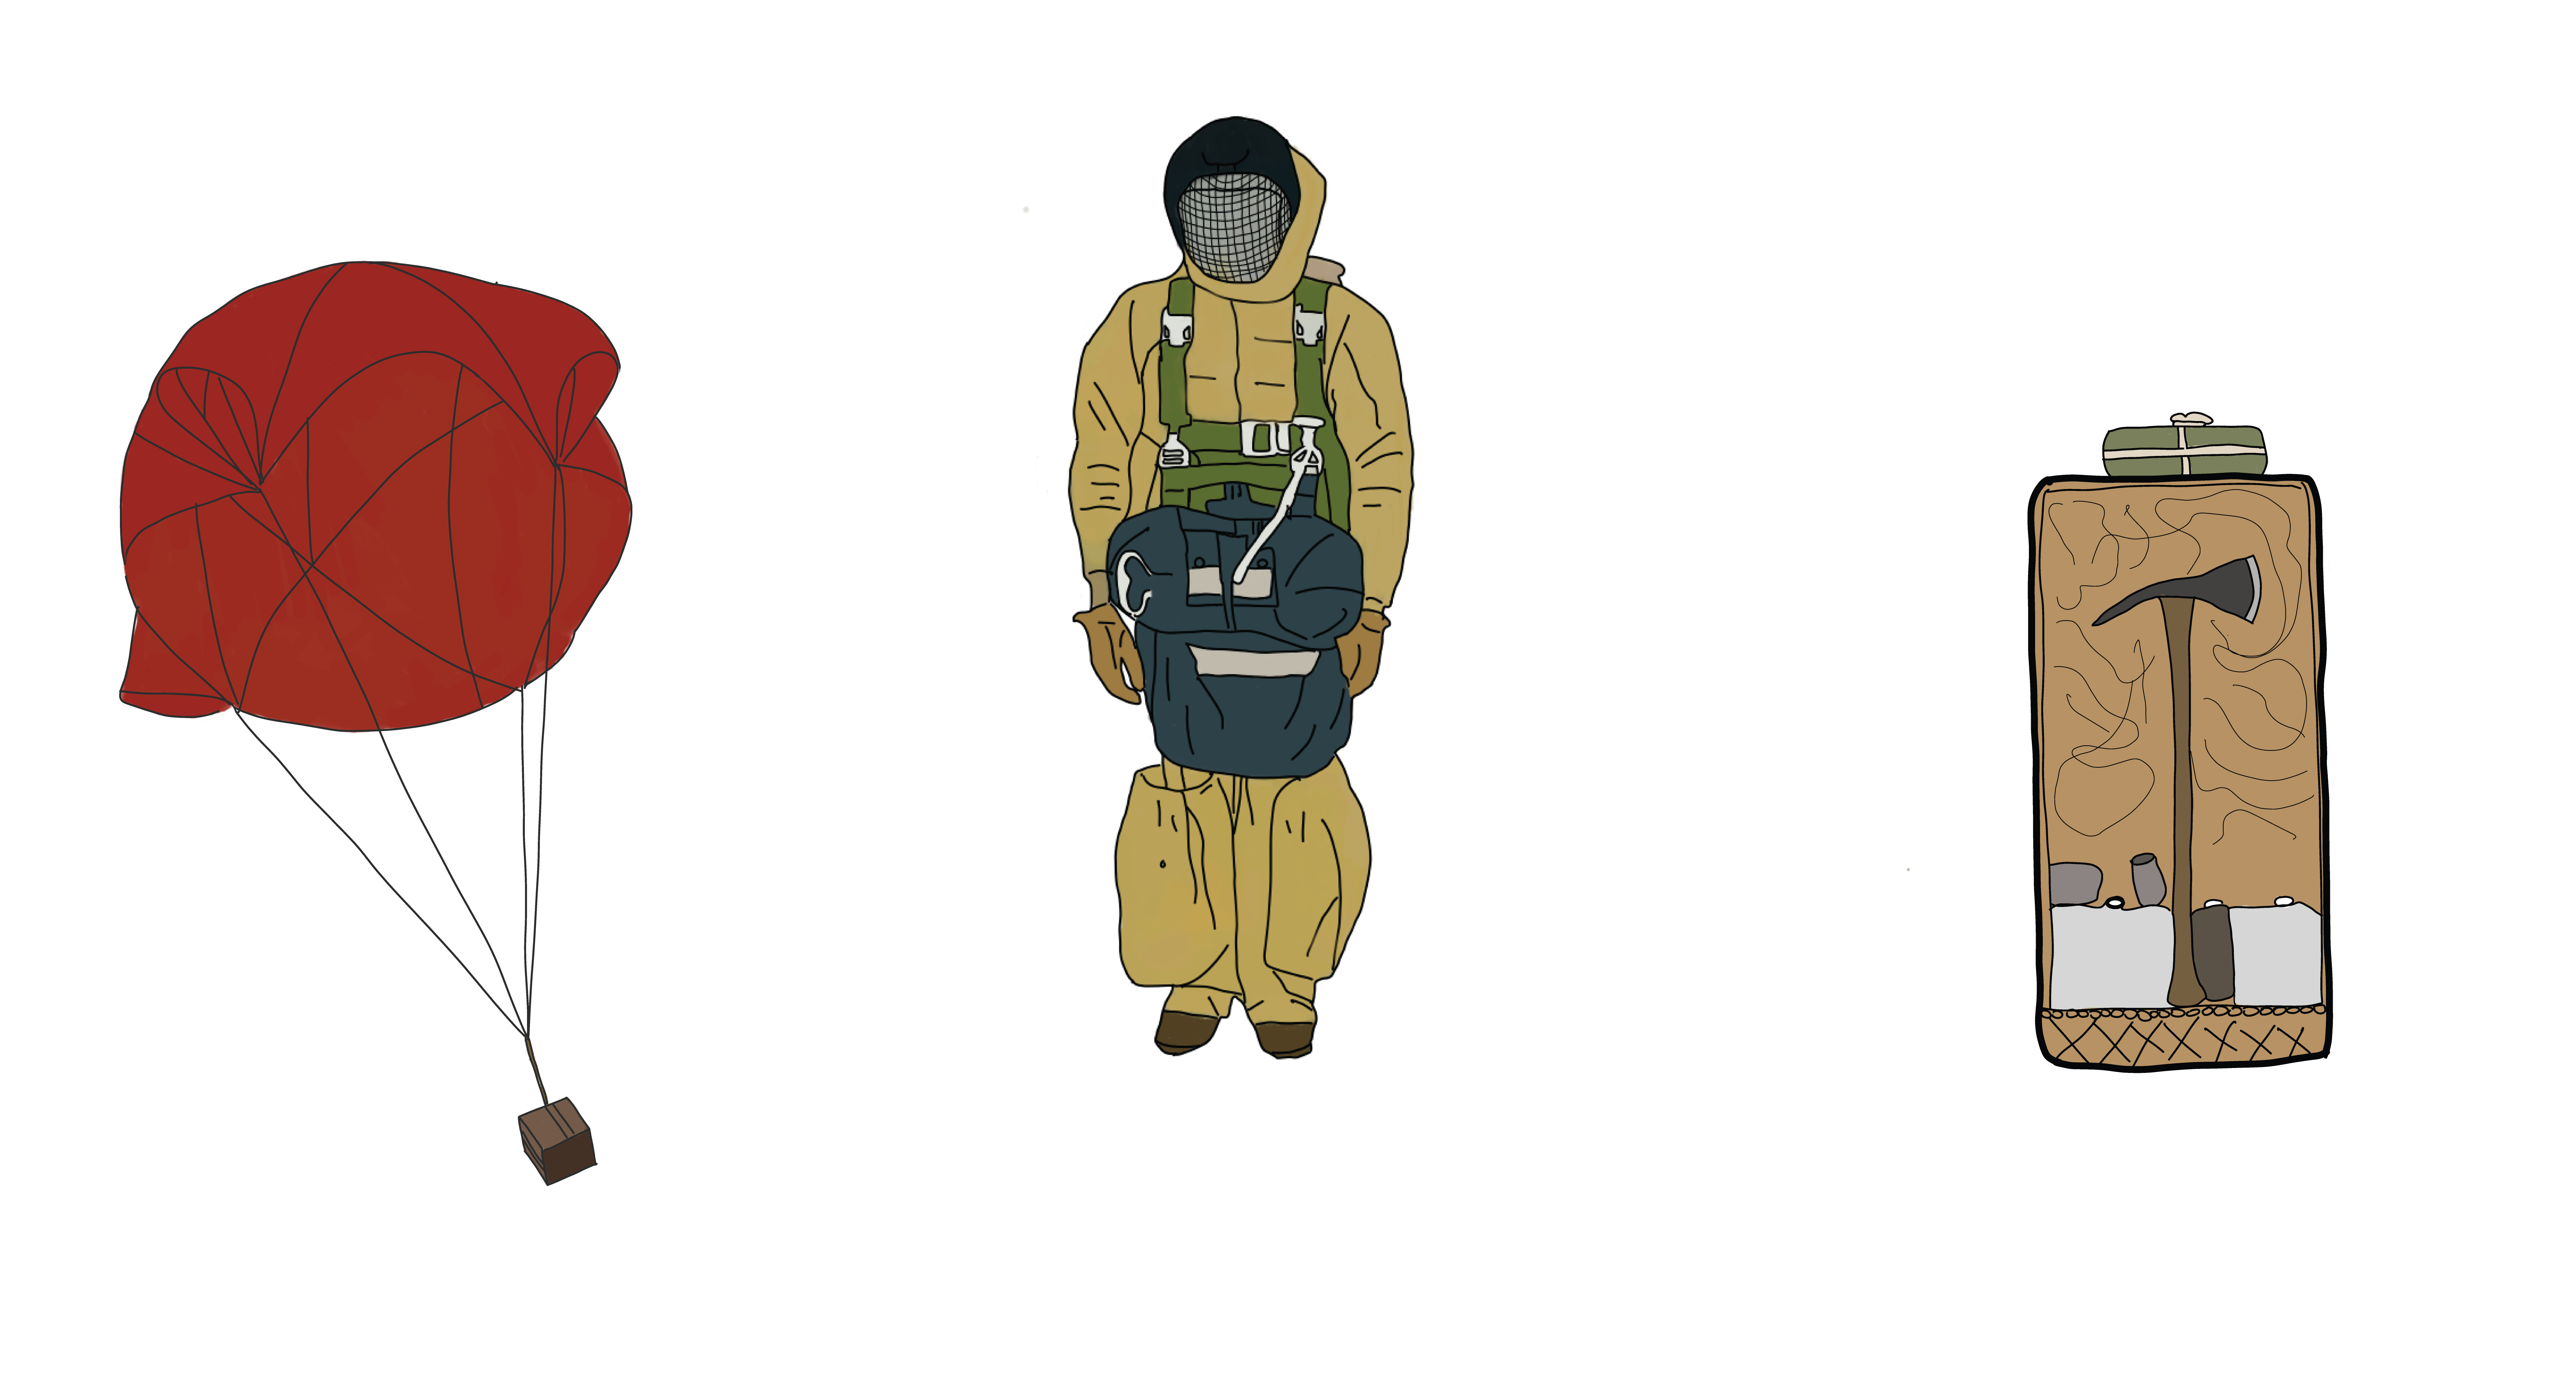 Hand drawn illustration of a cargo box, smokejumper, and firebox